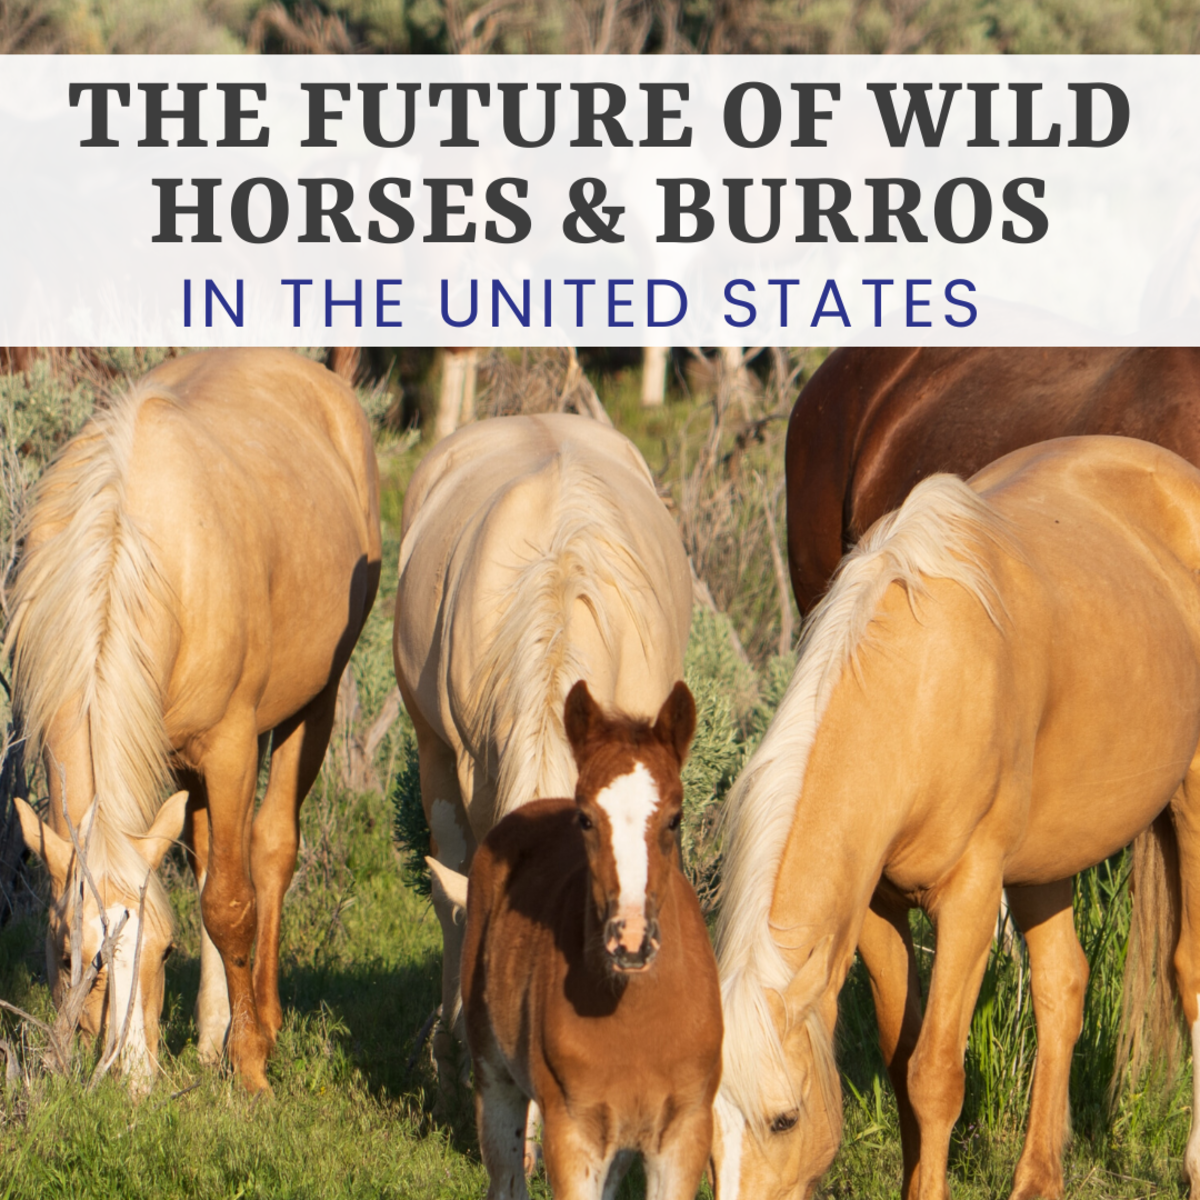 The Troubling Status of Wild Horses and Burros in the United States